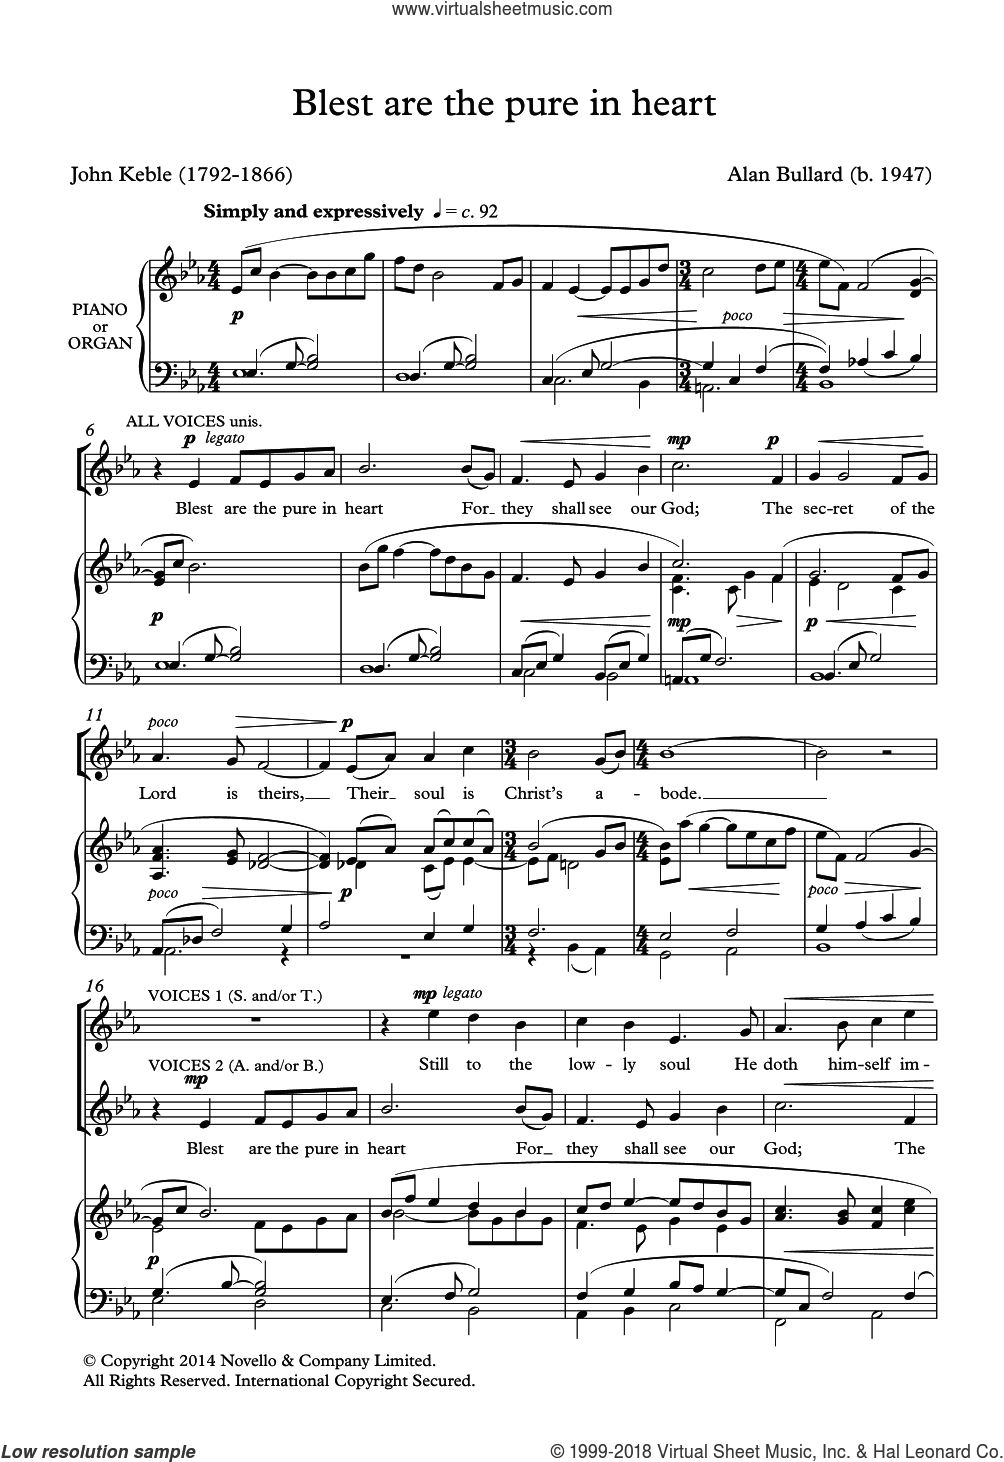 Blest Are The Pure In Heart sheet music for choir by Alan Bullard and John Keble, intermediate skill level